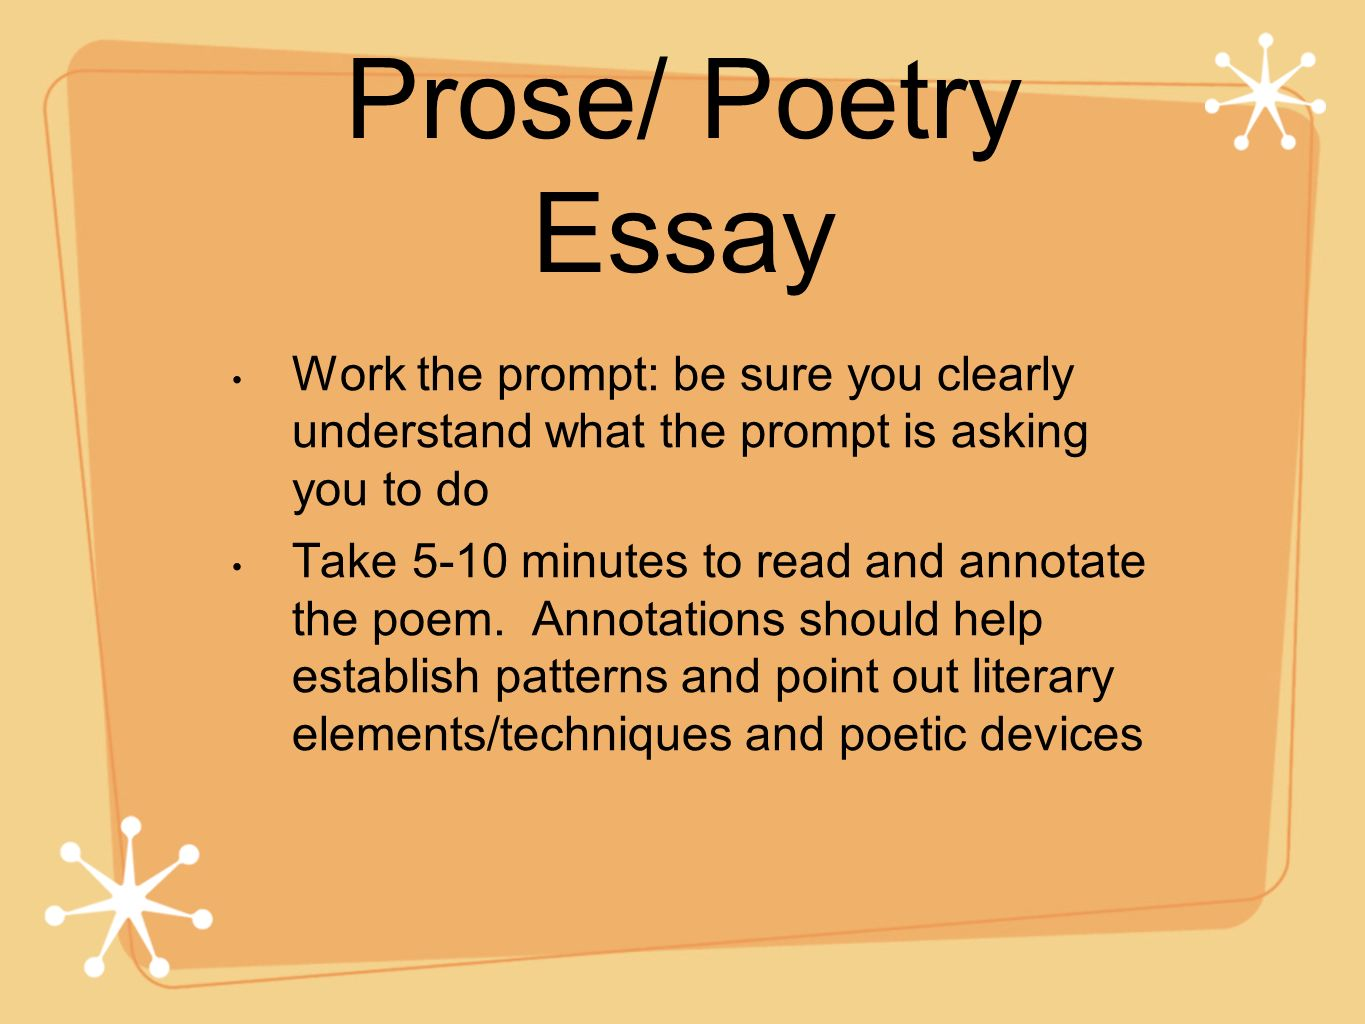 ap language analysis essay prompt